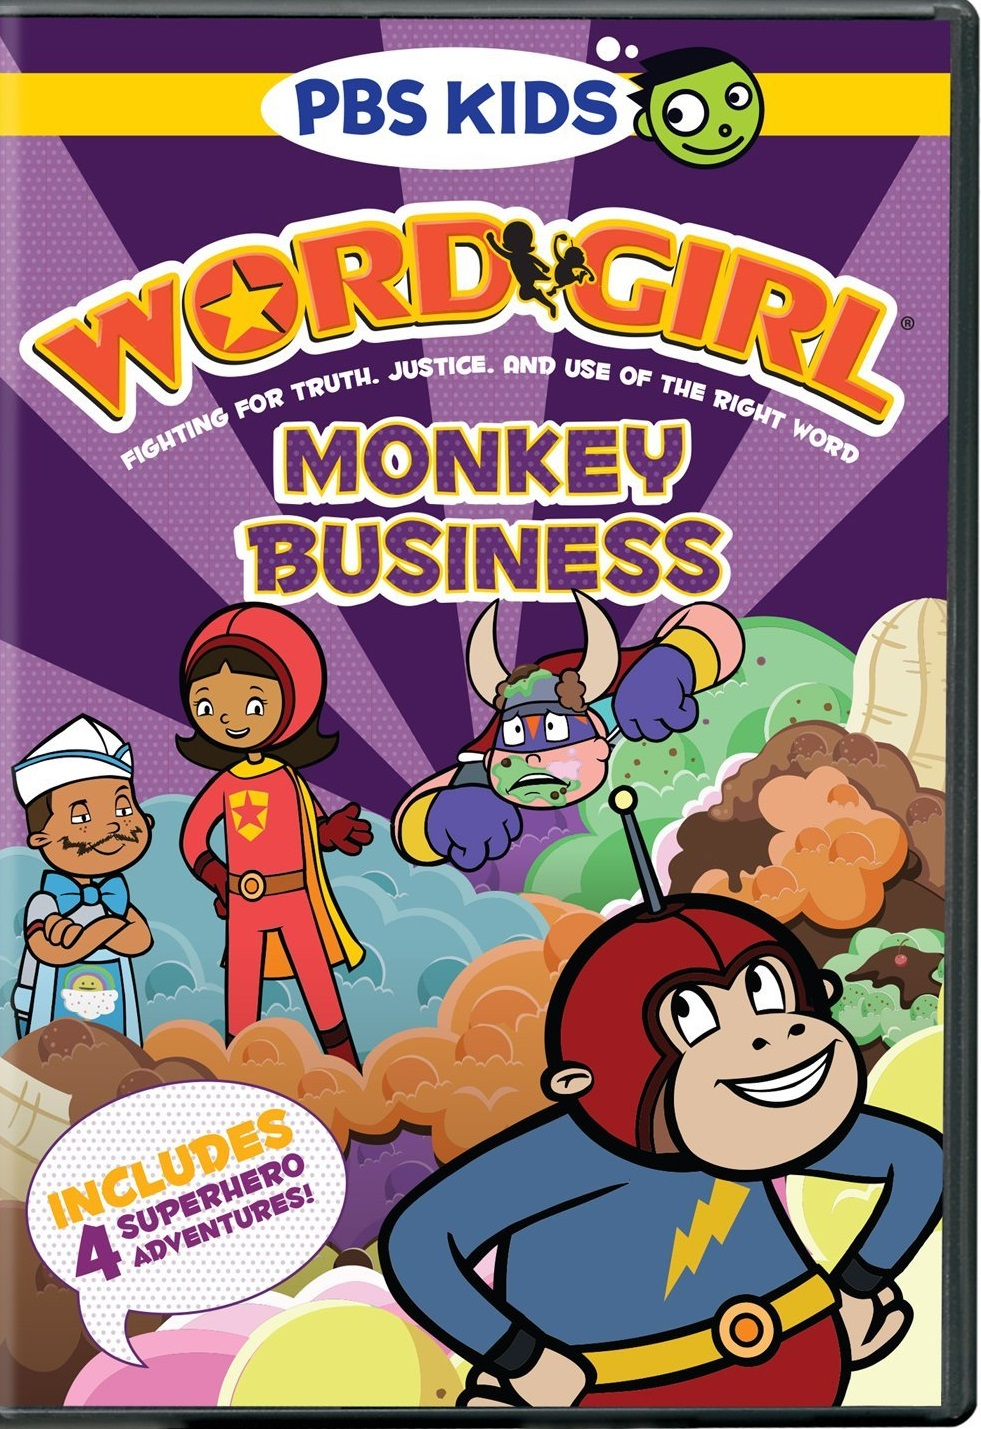 pbs kids releases release date info for new wordgirl dvd